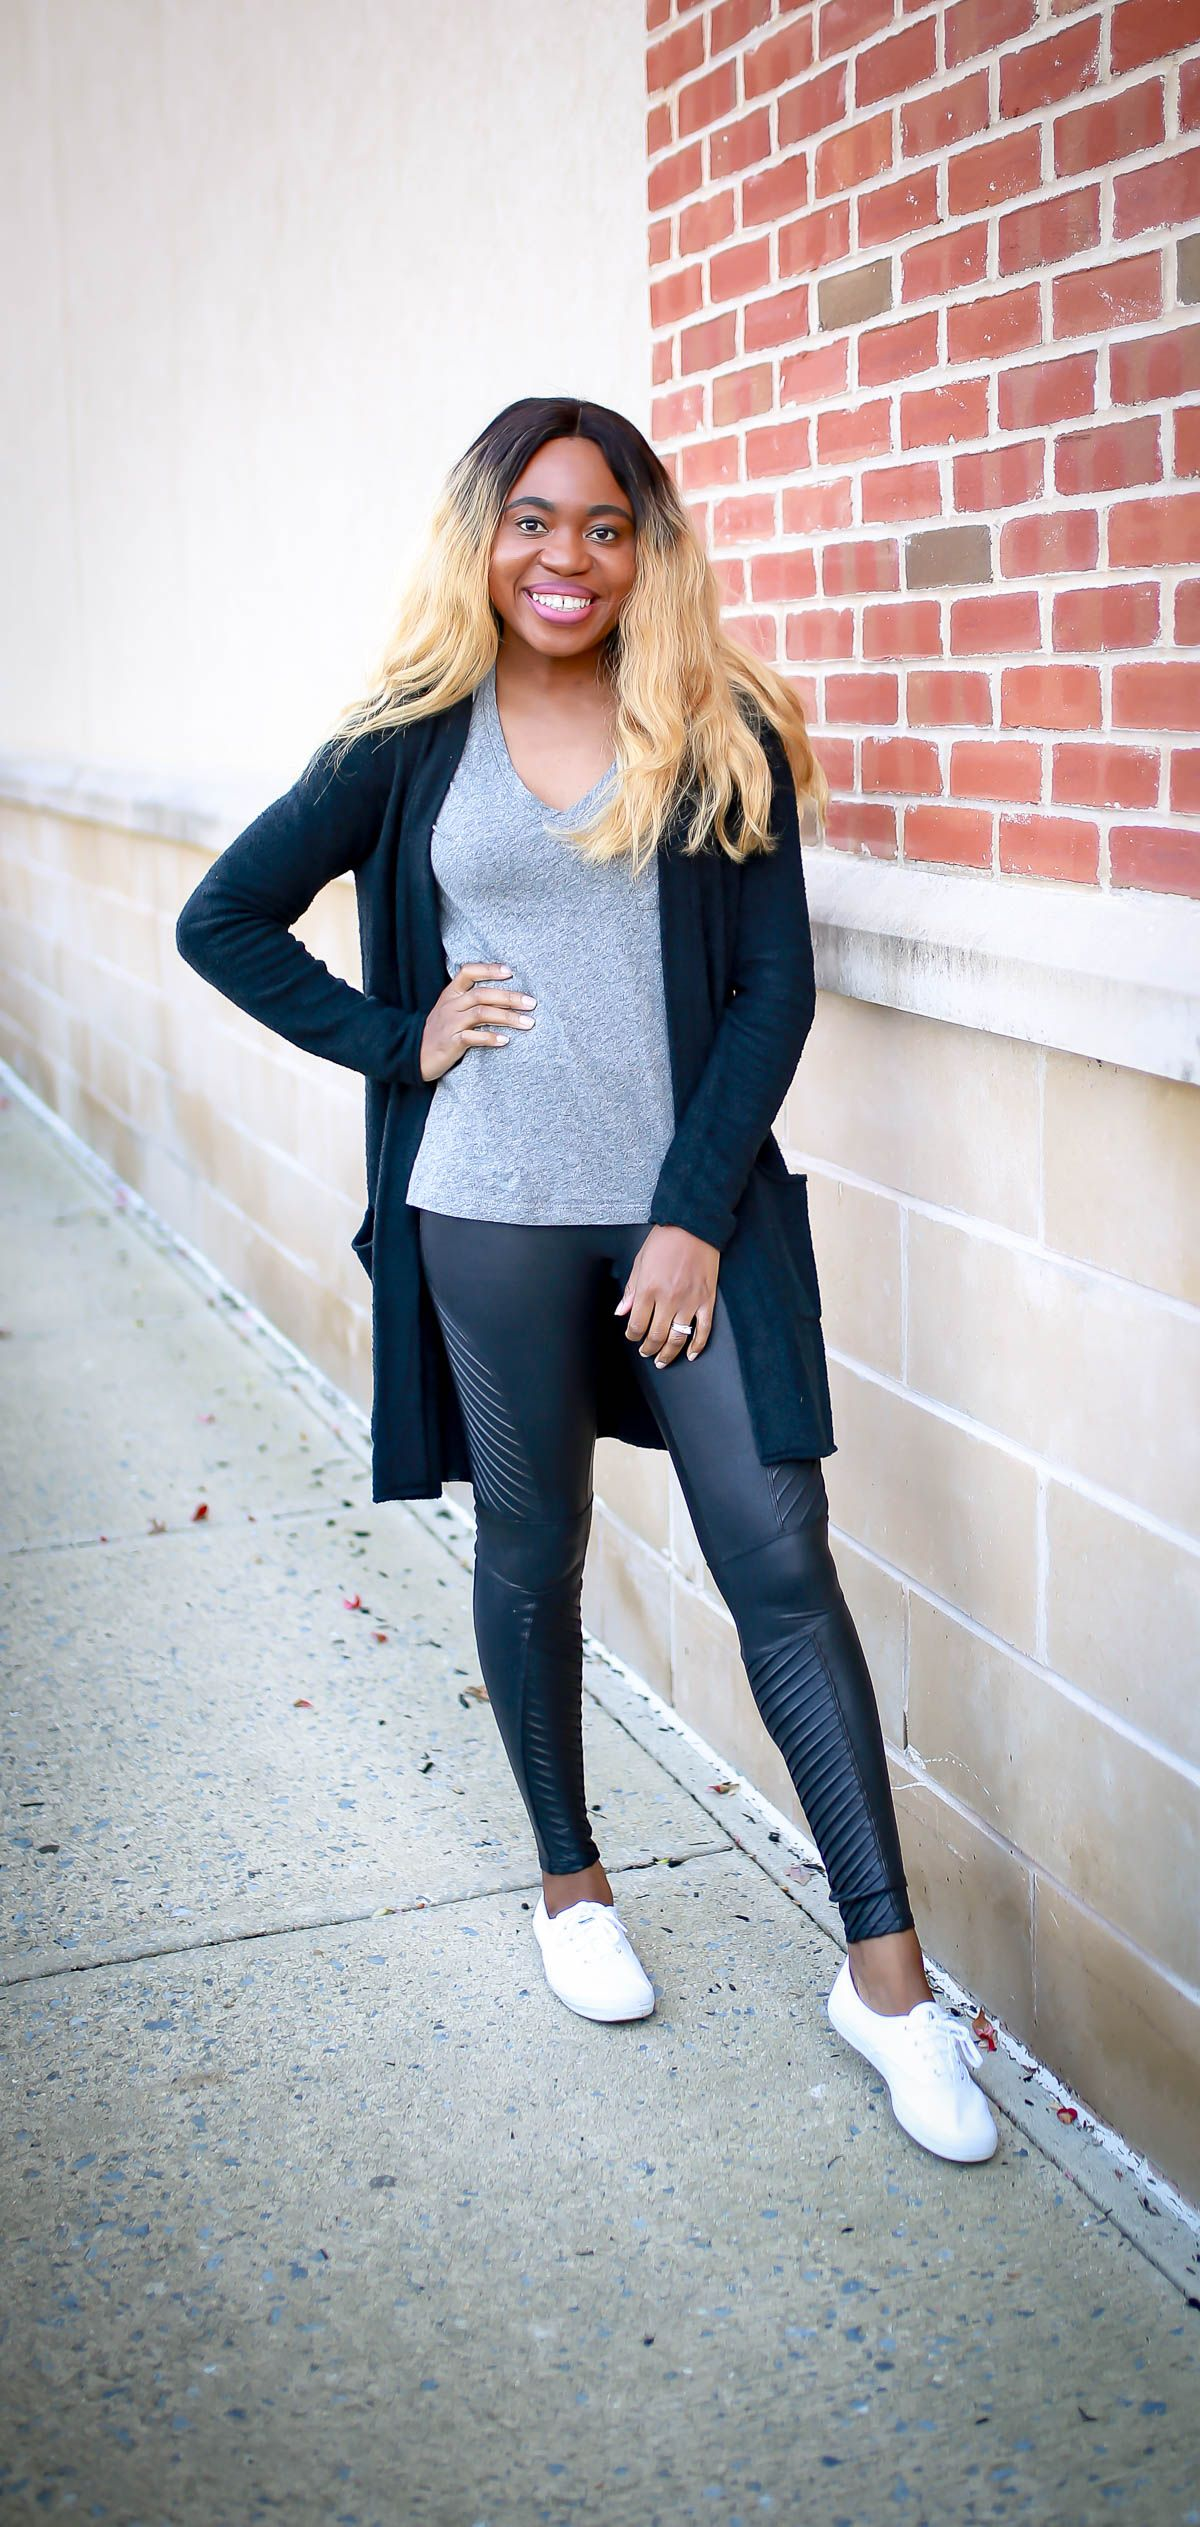 Honest Spanx Faux Leather Leggings Review Are They REALLY